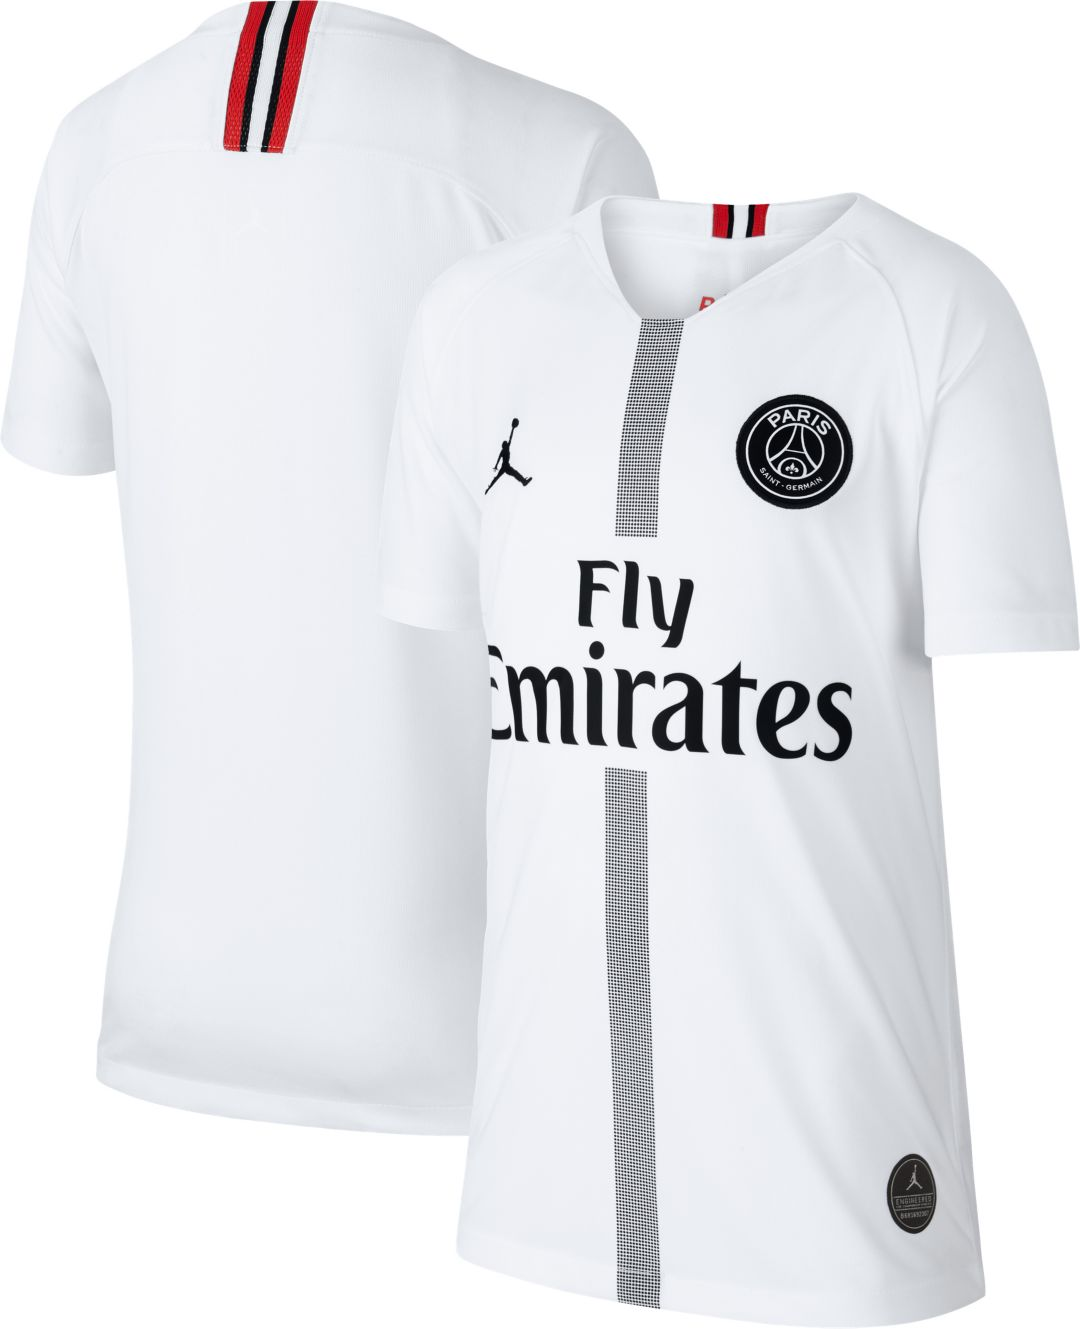 229c32b35d7 Jordan Youth Paris Saint-Germain 18/19 Breathe Stadium White Third Replica  Jeresy 1